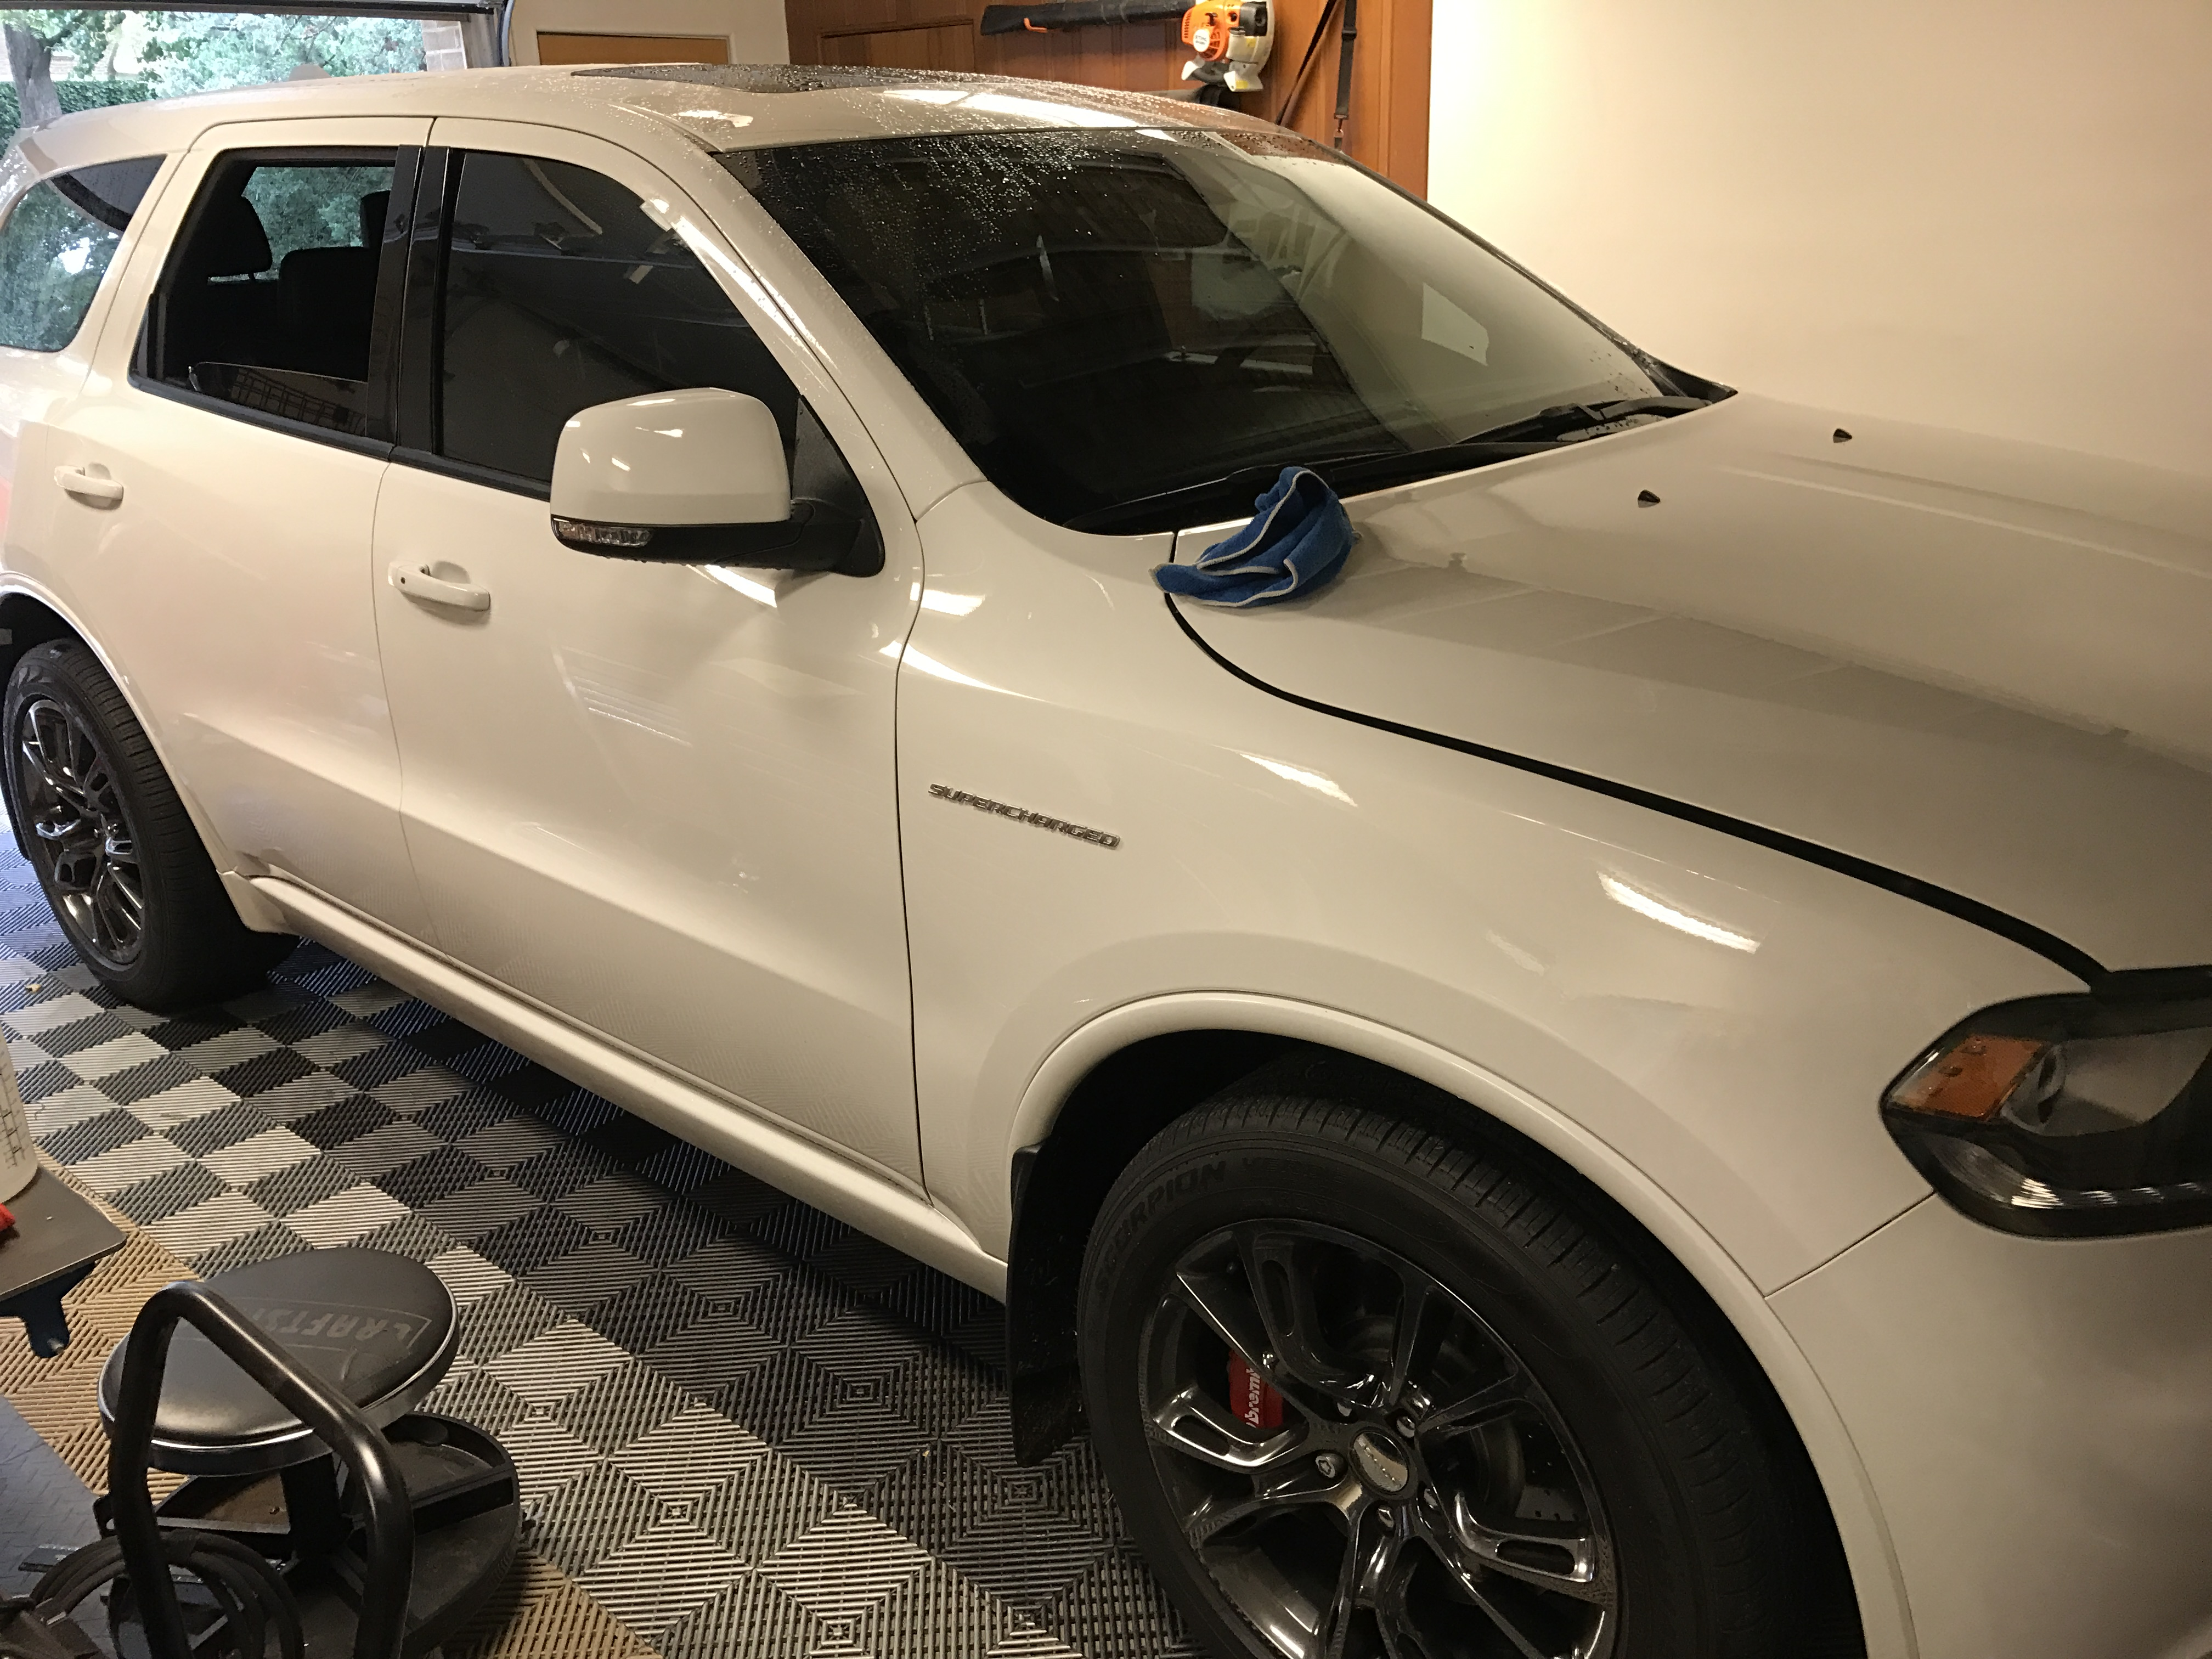 2015 Dodge Durango RT Paintless Dent Removal, Springfield IL http://217dent.com